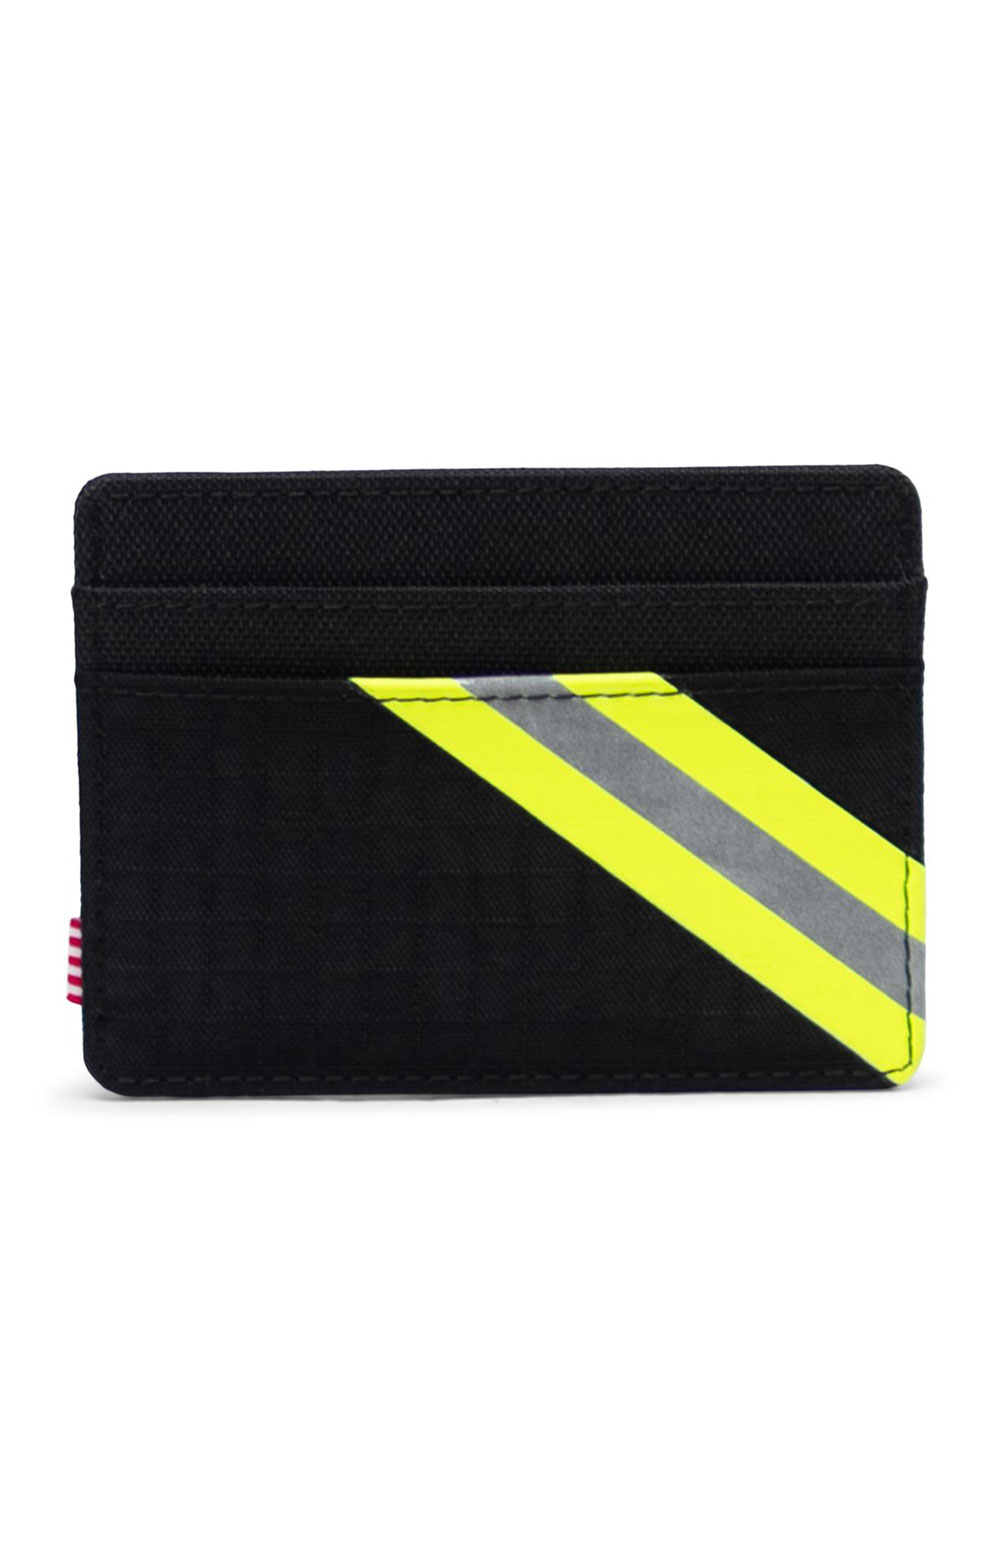 Charlie Wallet - Black Enzyme Ripstop/Black/Safety Yellow 4